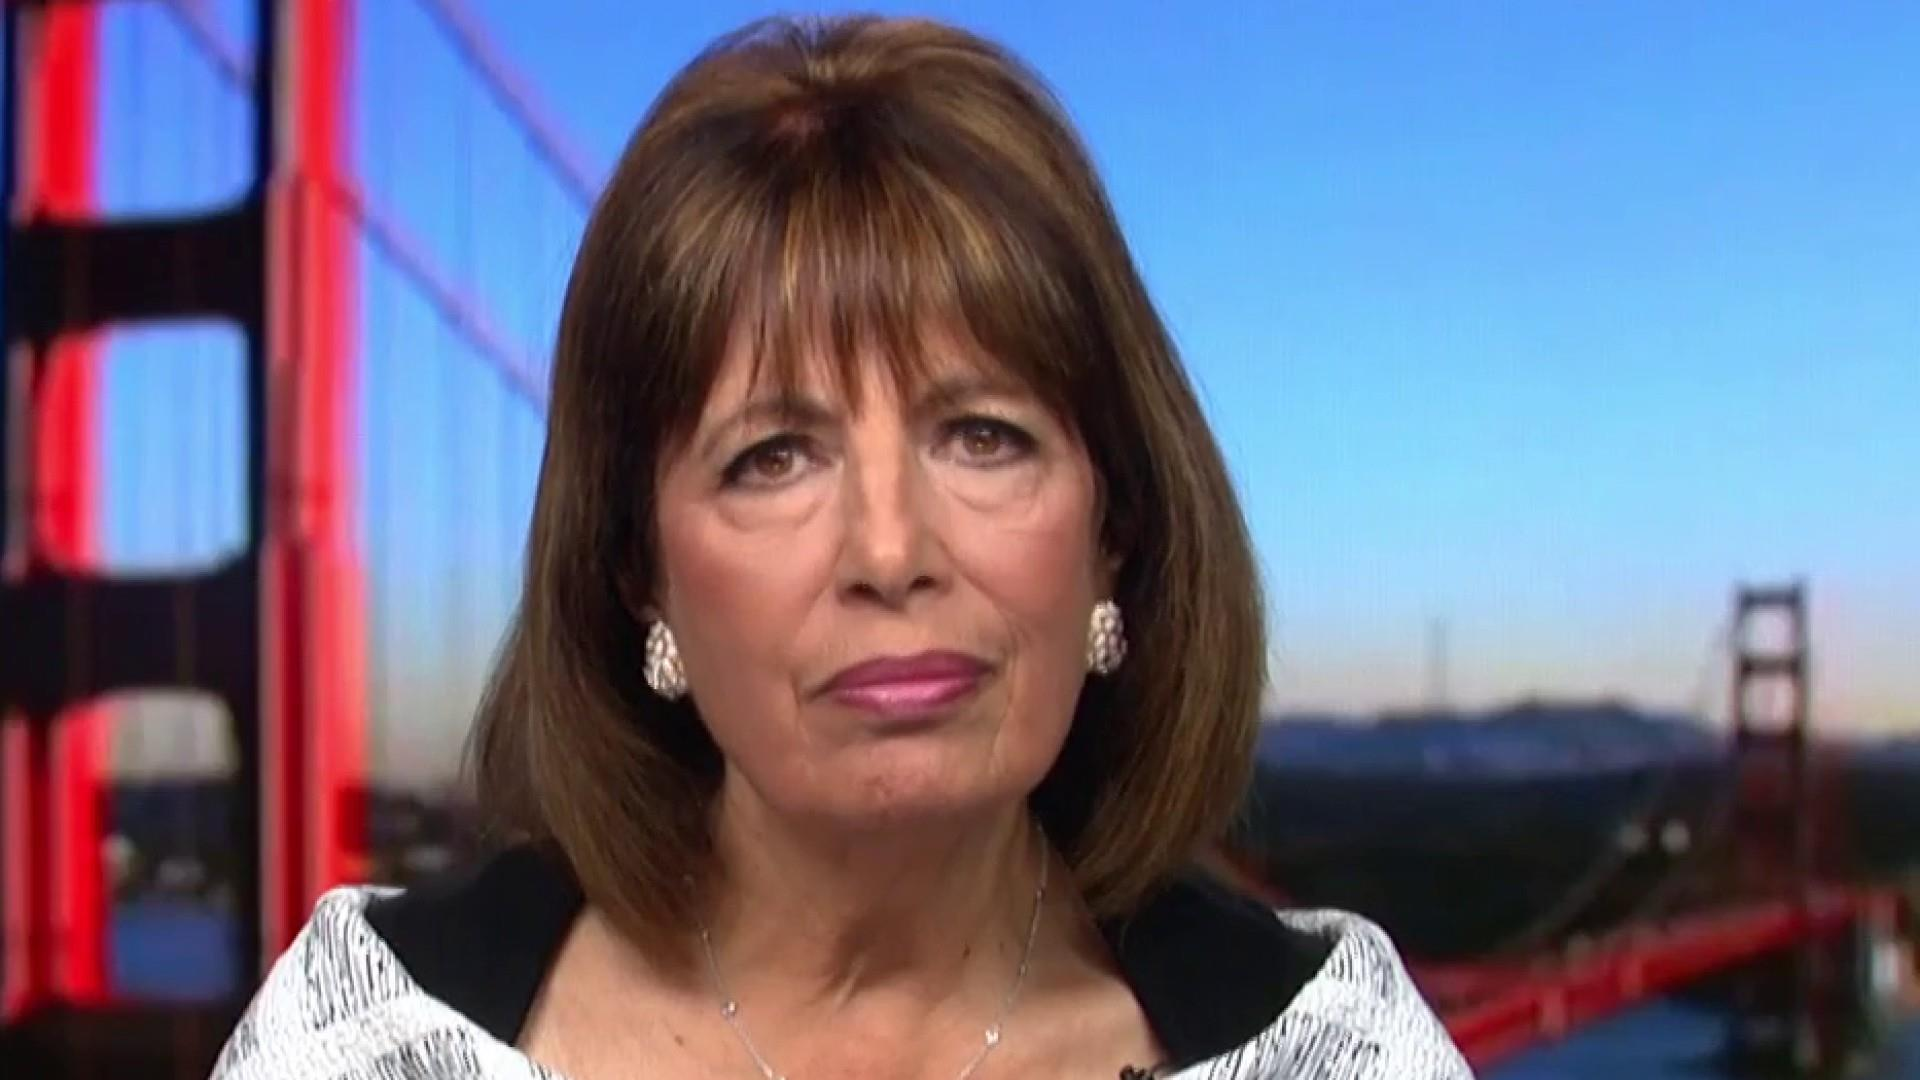 Rep. Speier on Democrats' next moves on gun reform, McConnell's lack of action